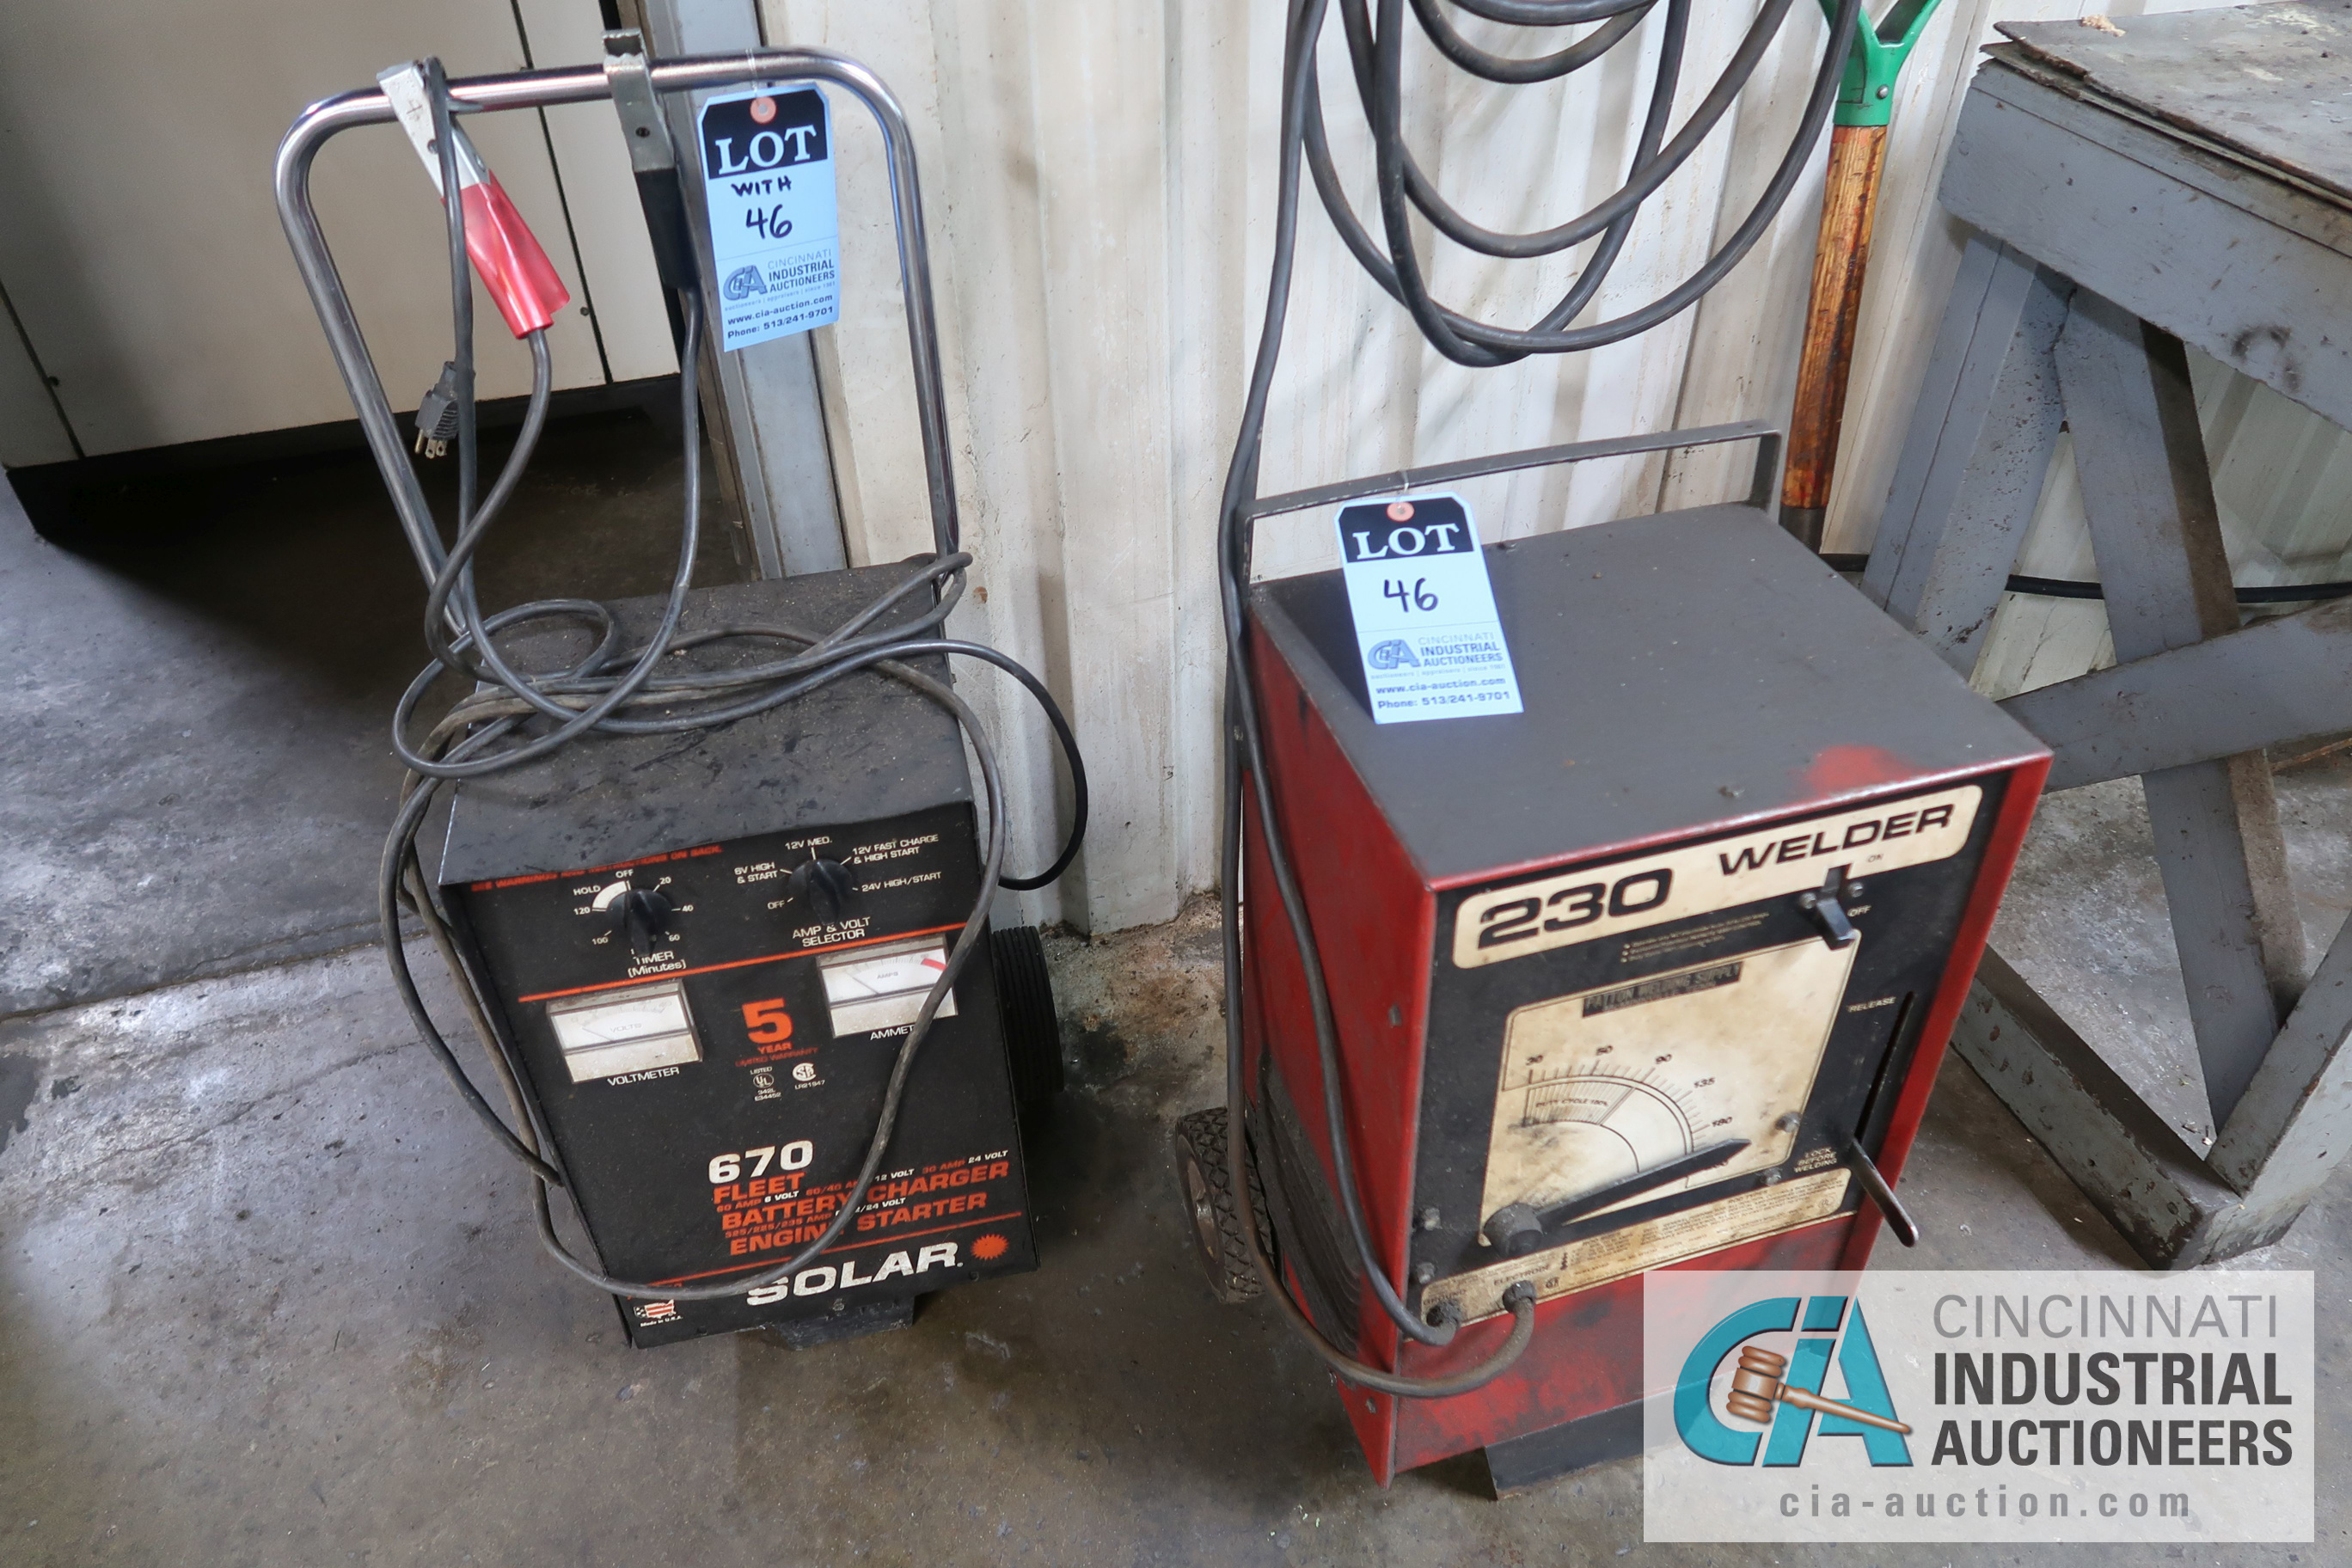 230 AMP BUZZ BOX WELDER WITH SOLAR 670 FLEET BATTERY CHARGER / ENGINE STARTER